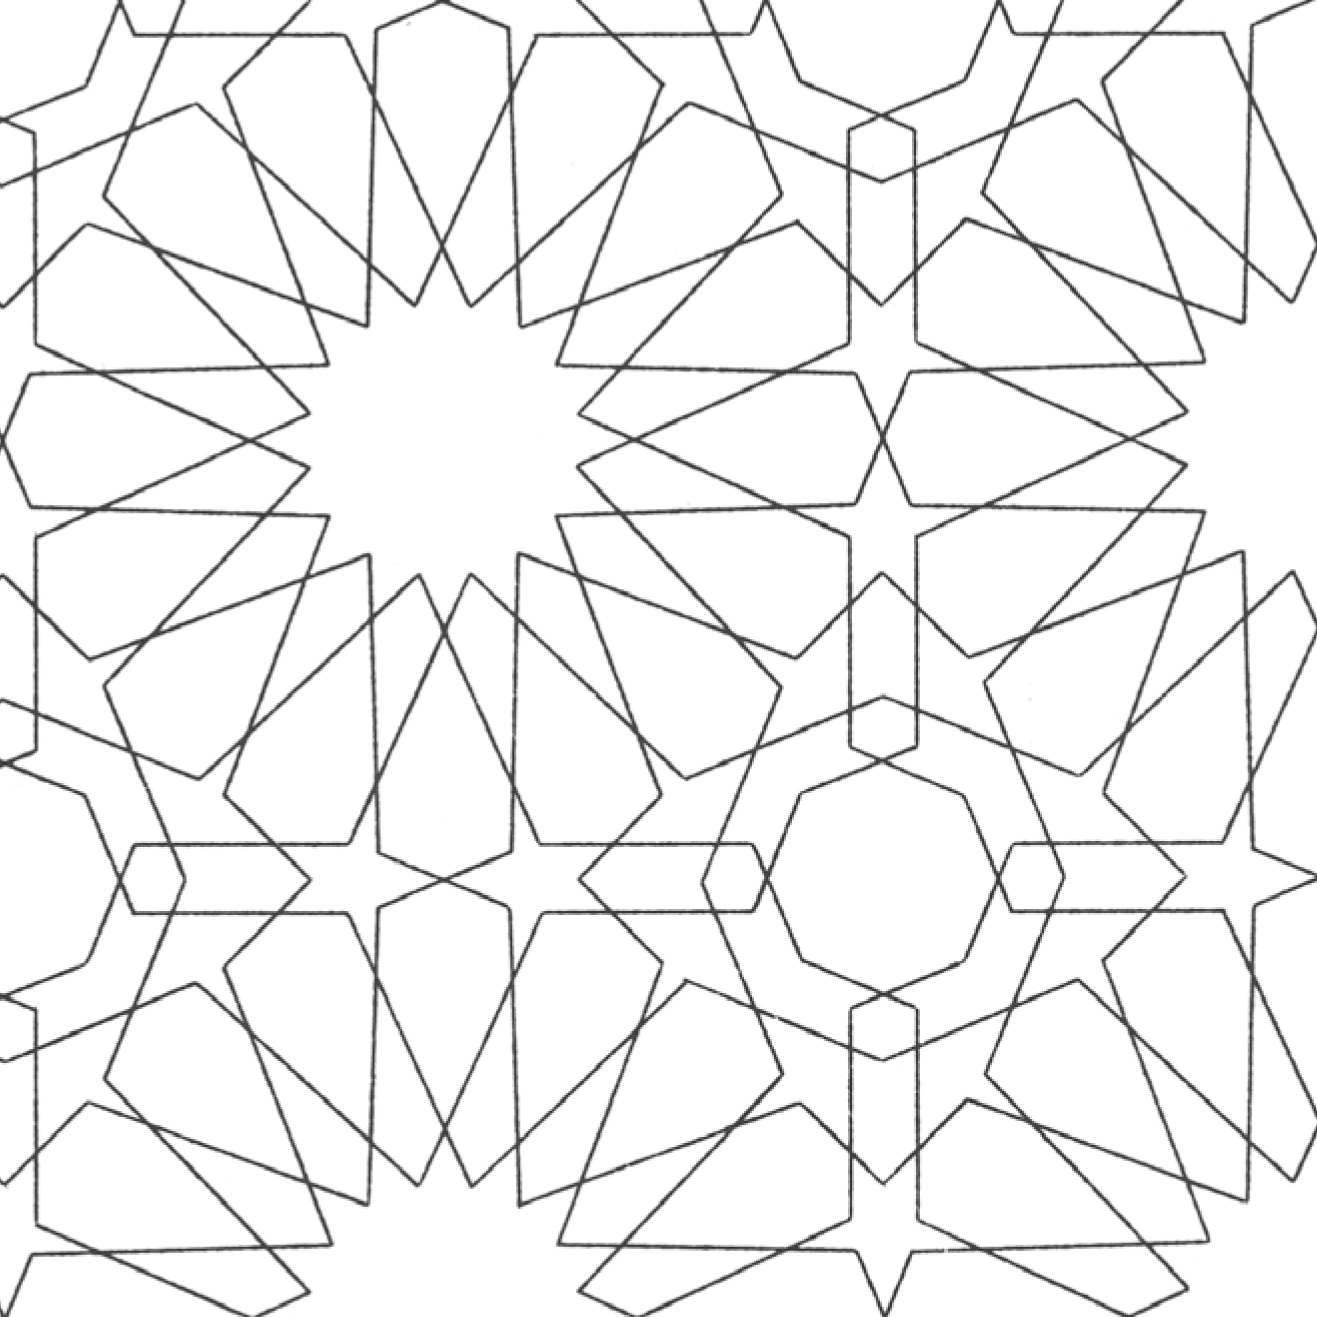 Arabicpatterns colouring pages woodcarving Резьба по дереву и